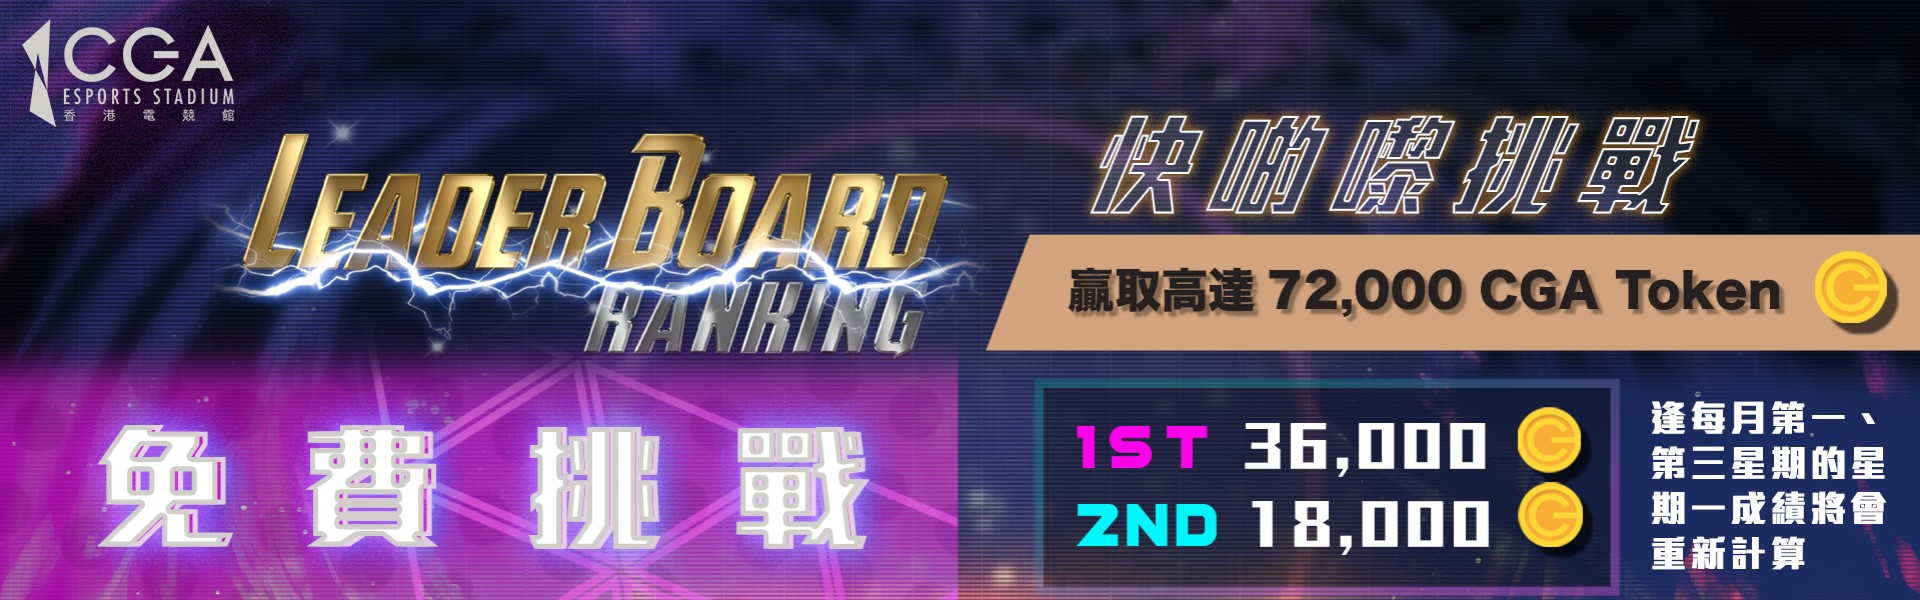 Leader Board Ranking賽